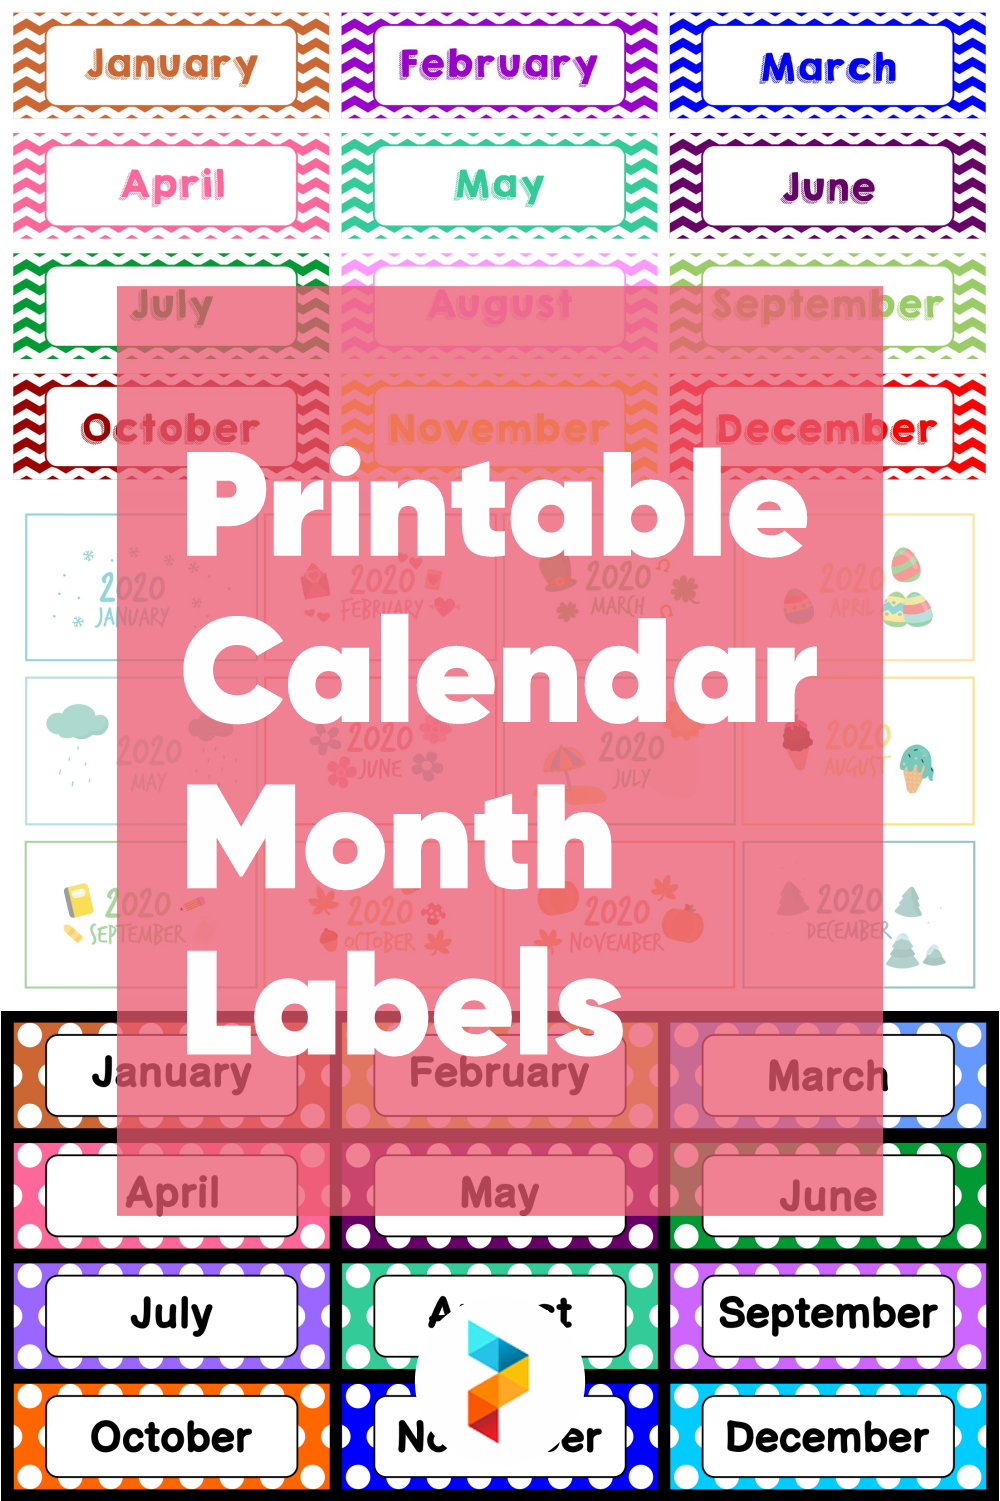 Printable Calendar Month Labels